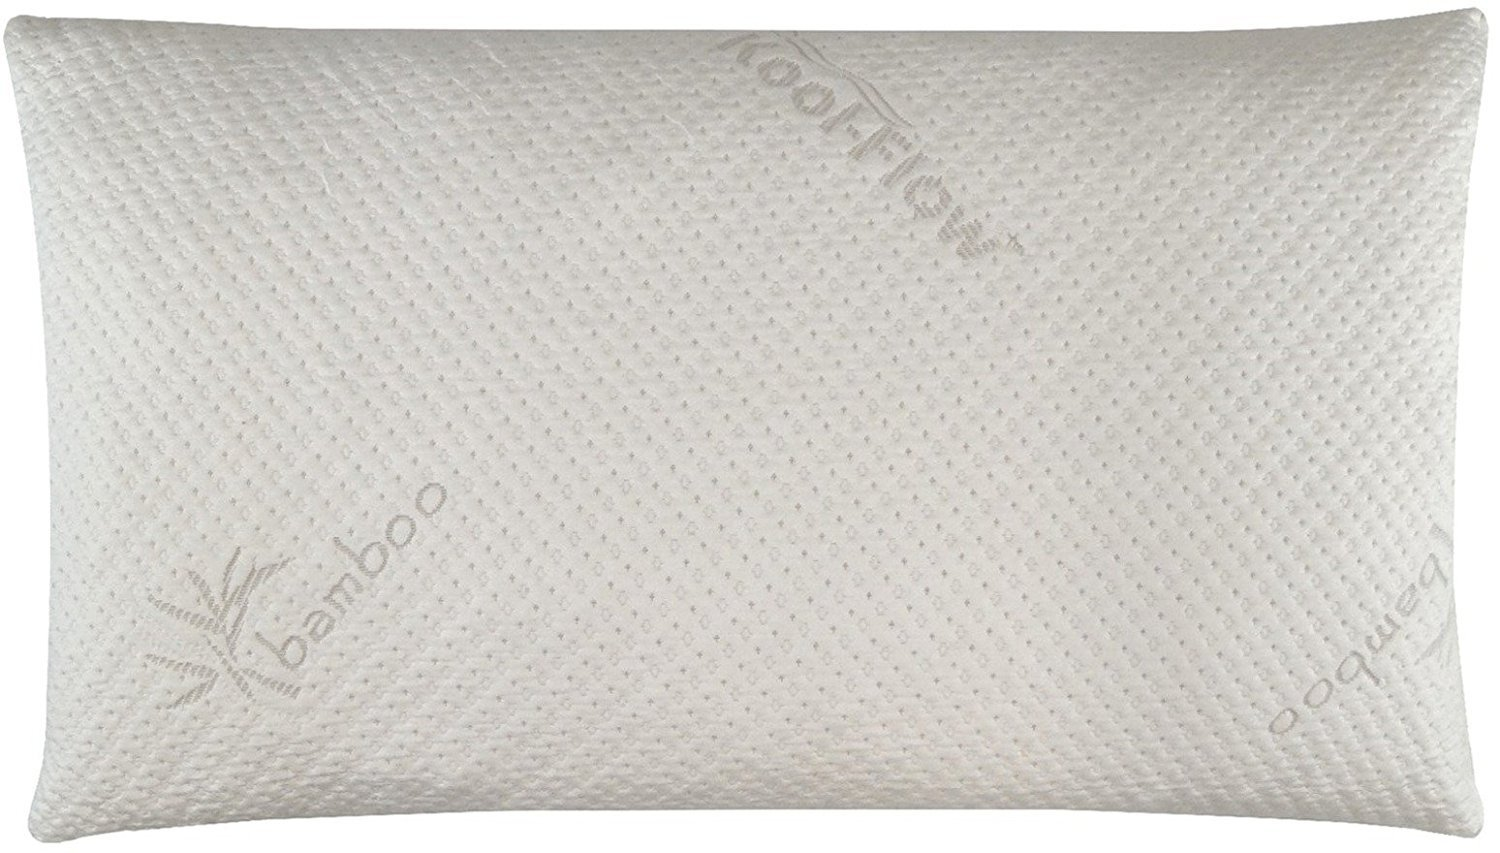 Snuggle-Pedic Ultra-Luxury Pillow (Best All-Around King Size Pillow)